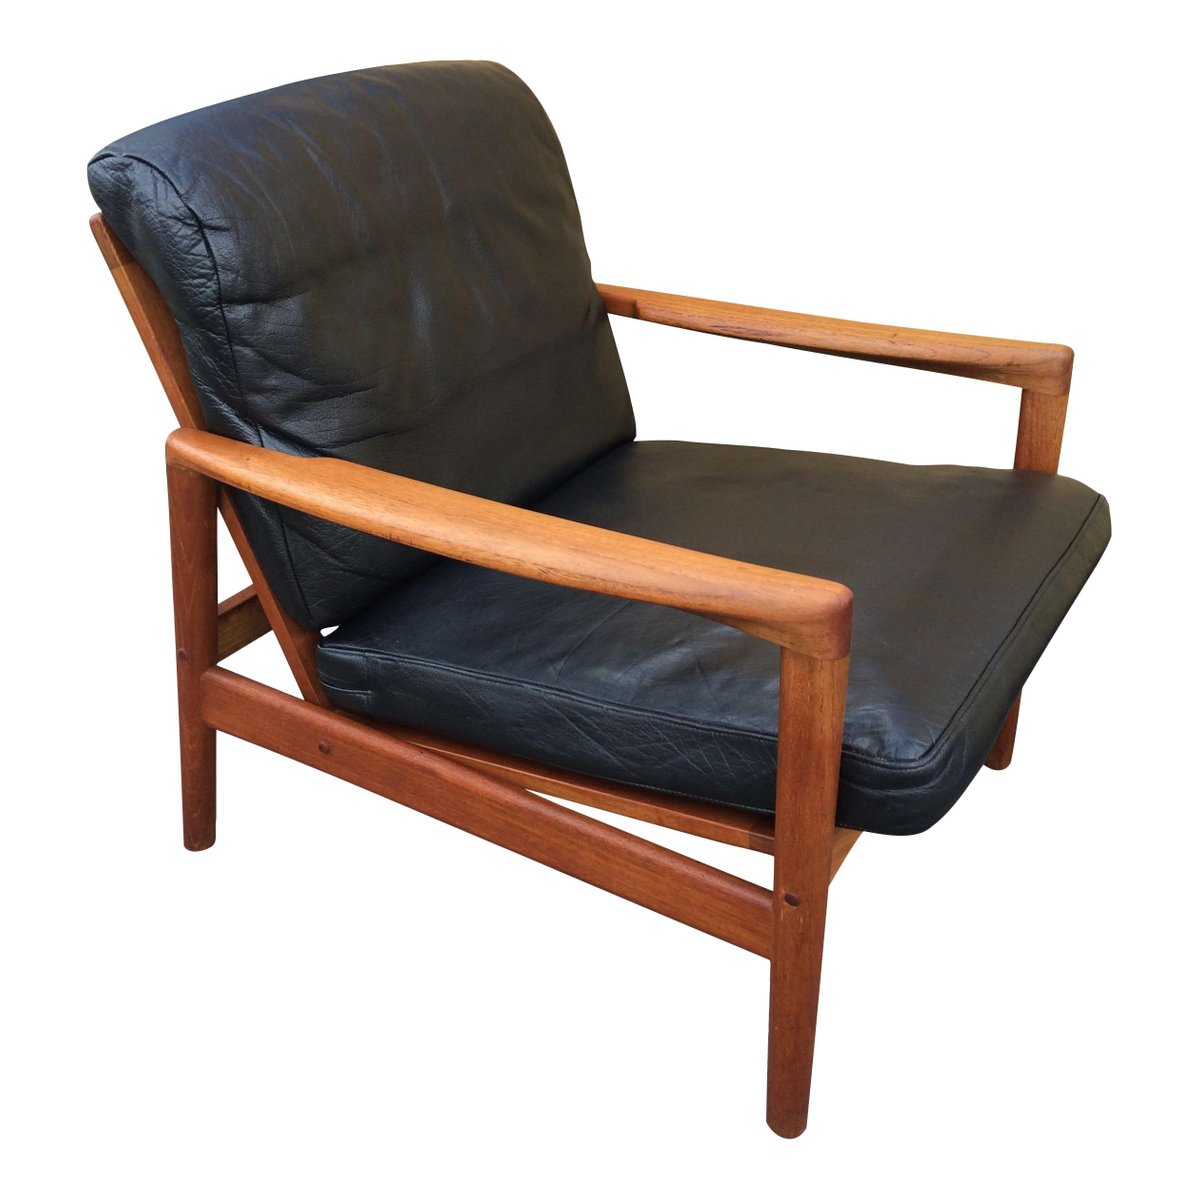 Vintage Danish Teak Easy Chair for sale at Pamono